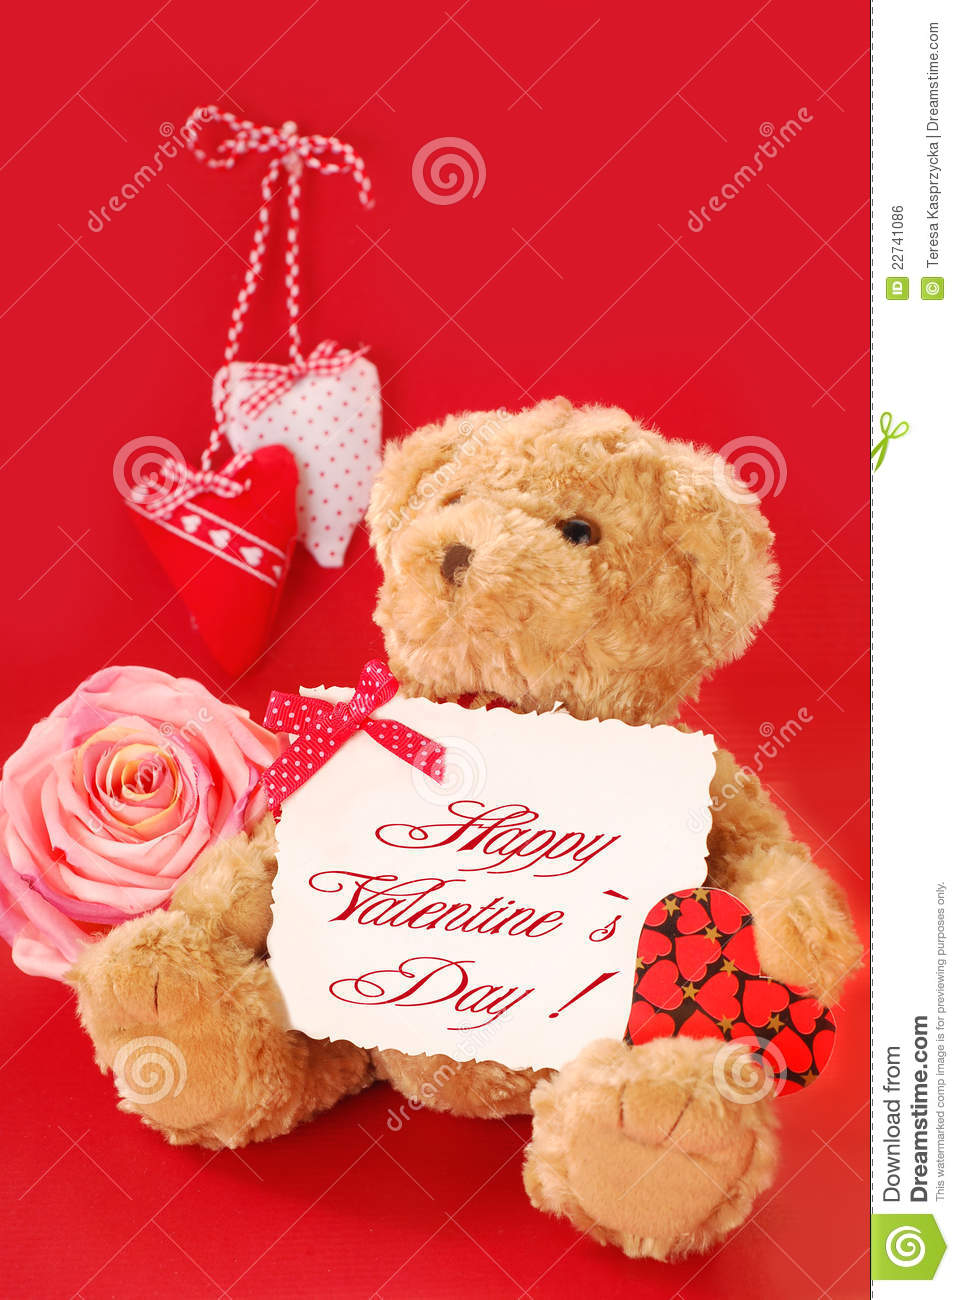 Valentines greetings from teddy bear stock photo image of paper download valentines greetings from teddy bear stock photo image of paper beautiful m4hsunfo